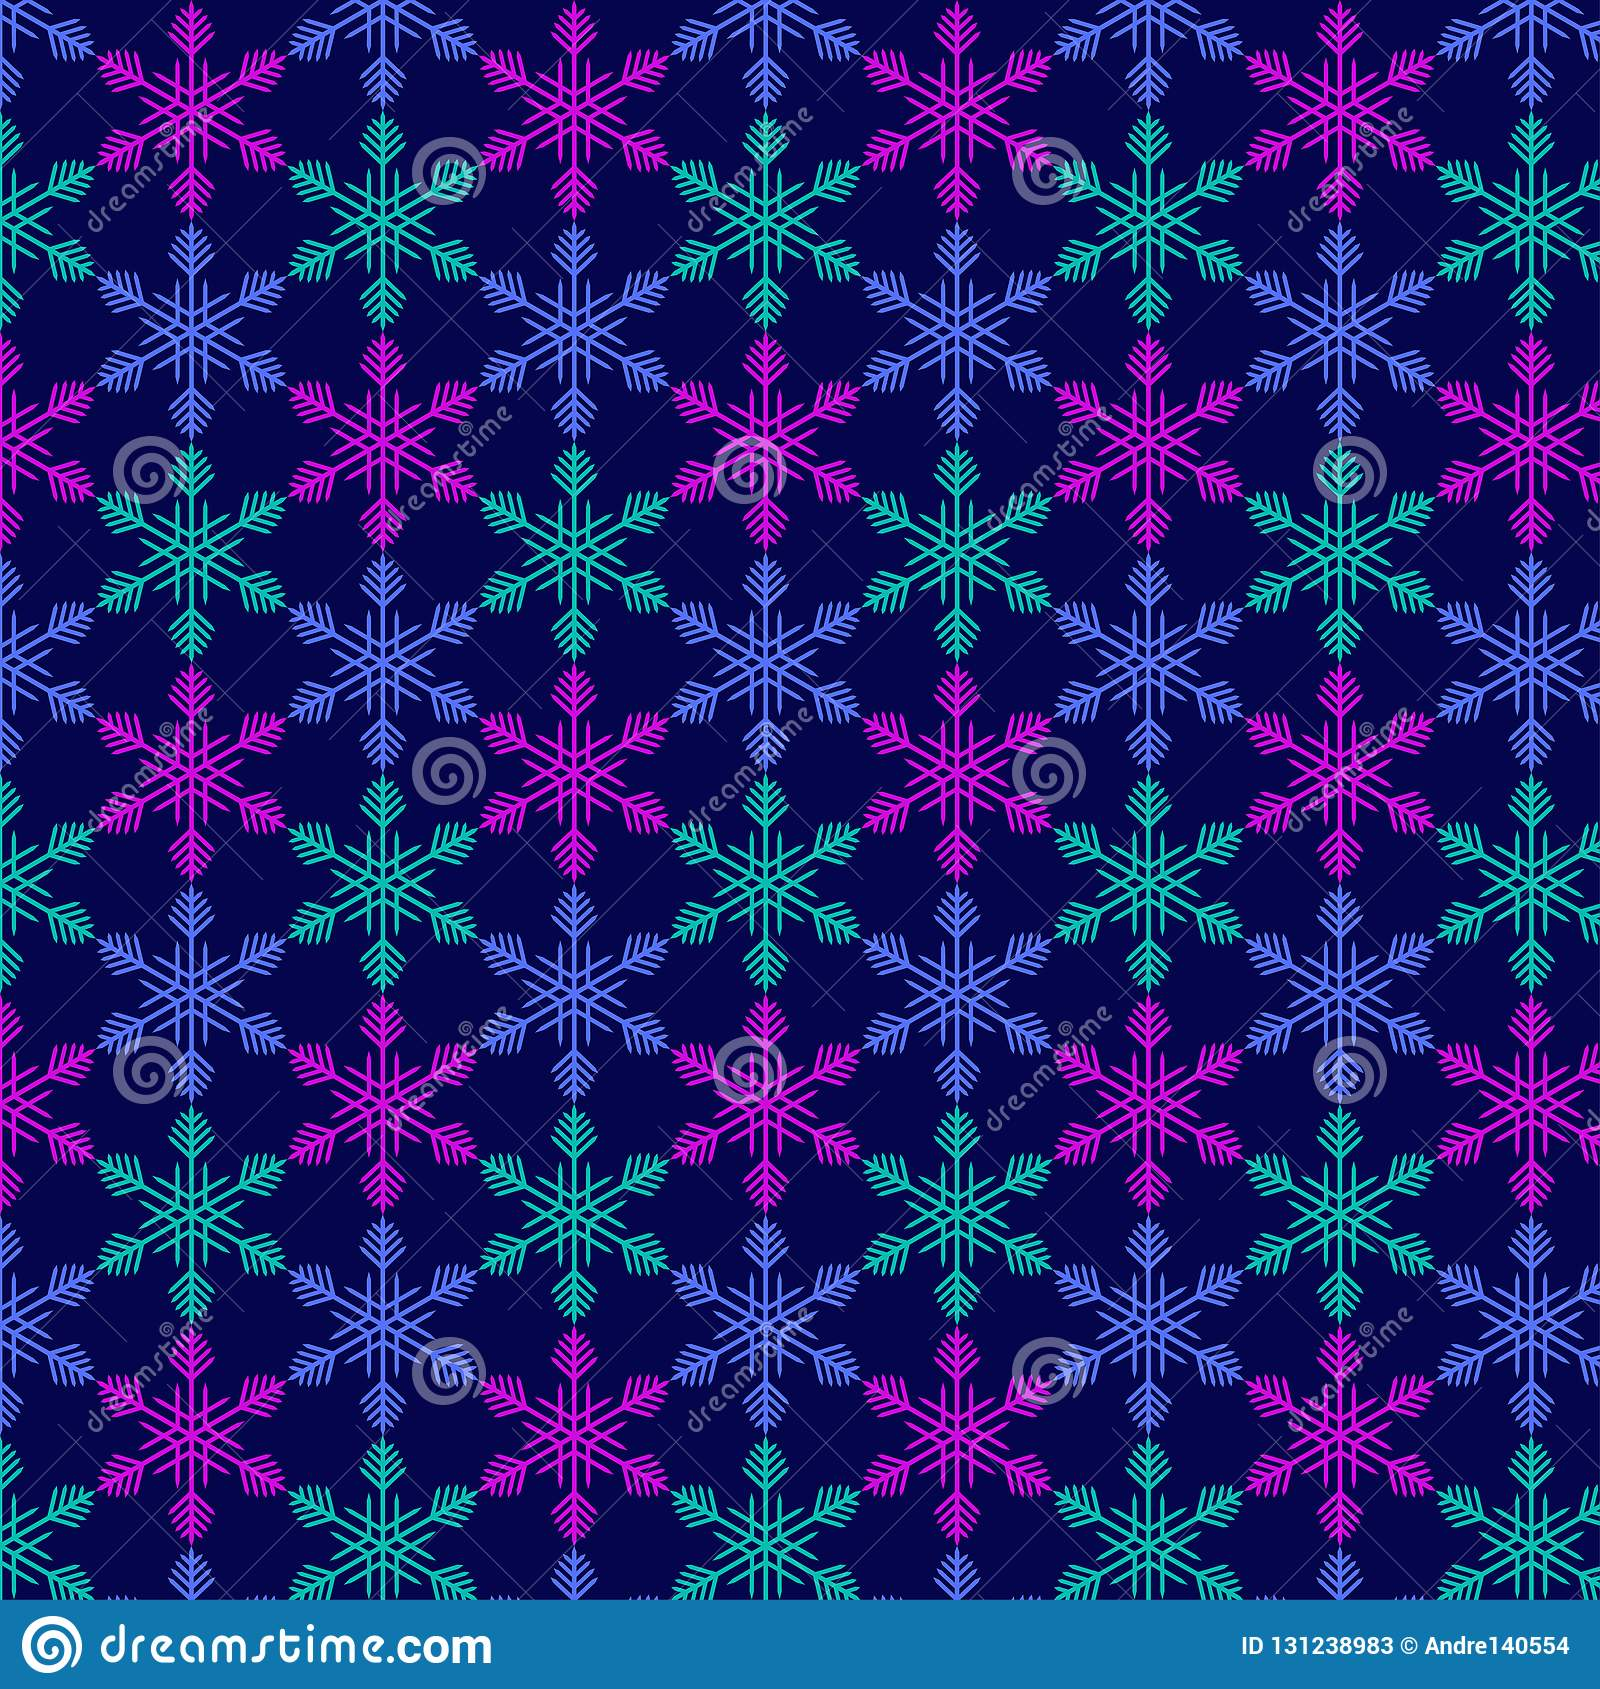 Pattern from snowflake without seam